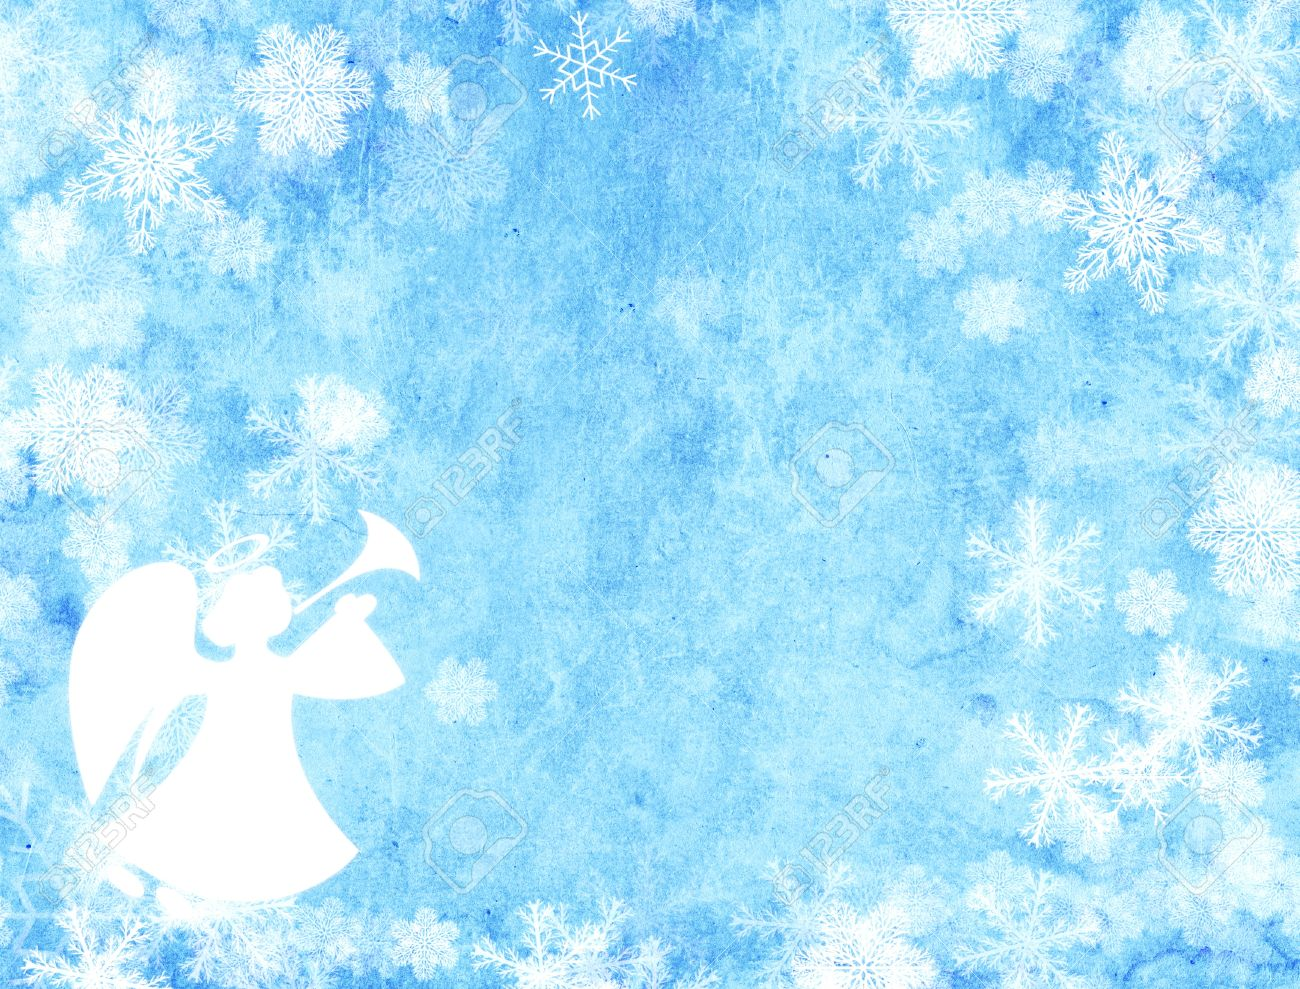 Christmas Grunge Background With Angel Stock Photo, Picture And ...